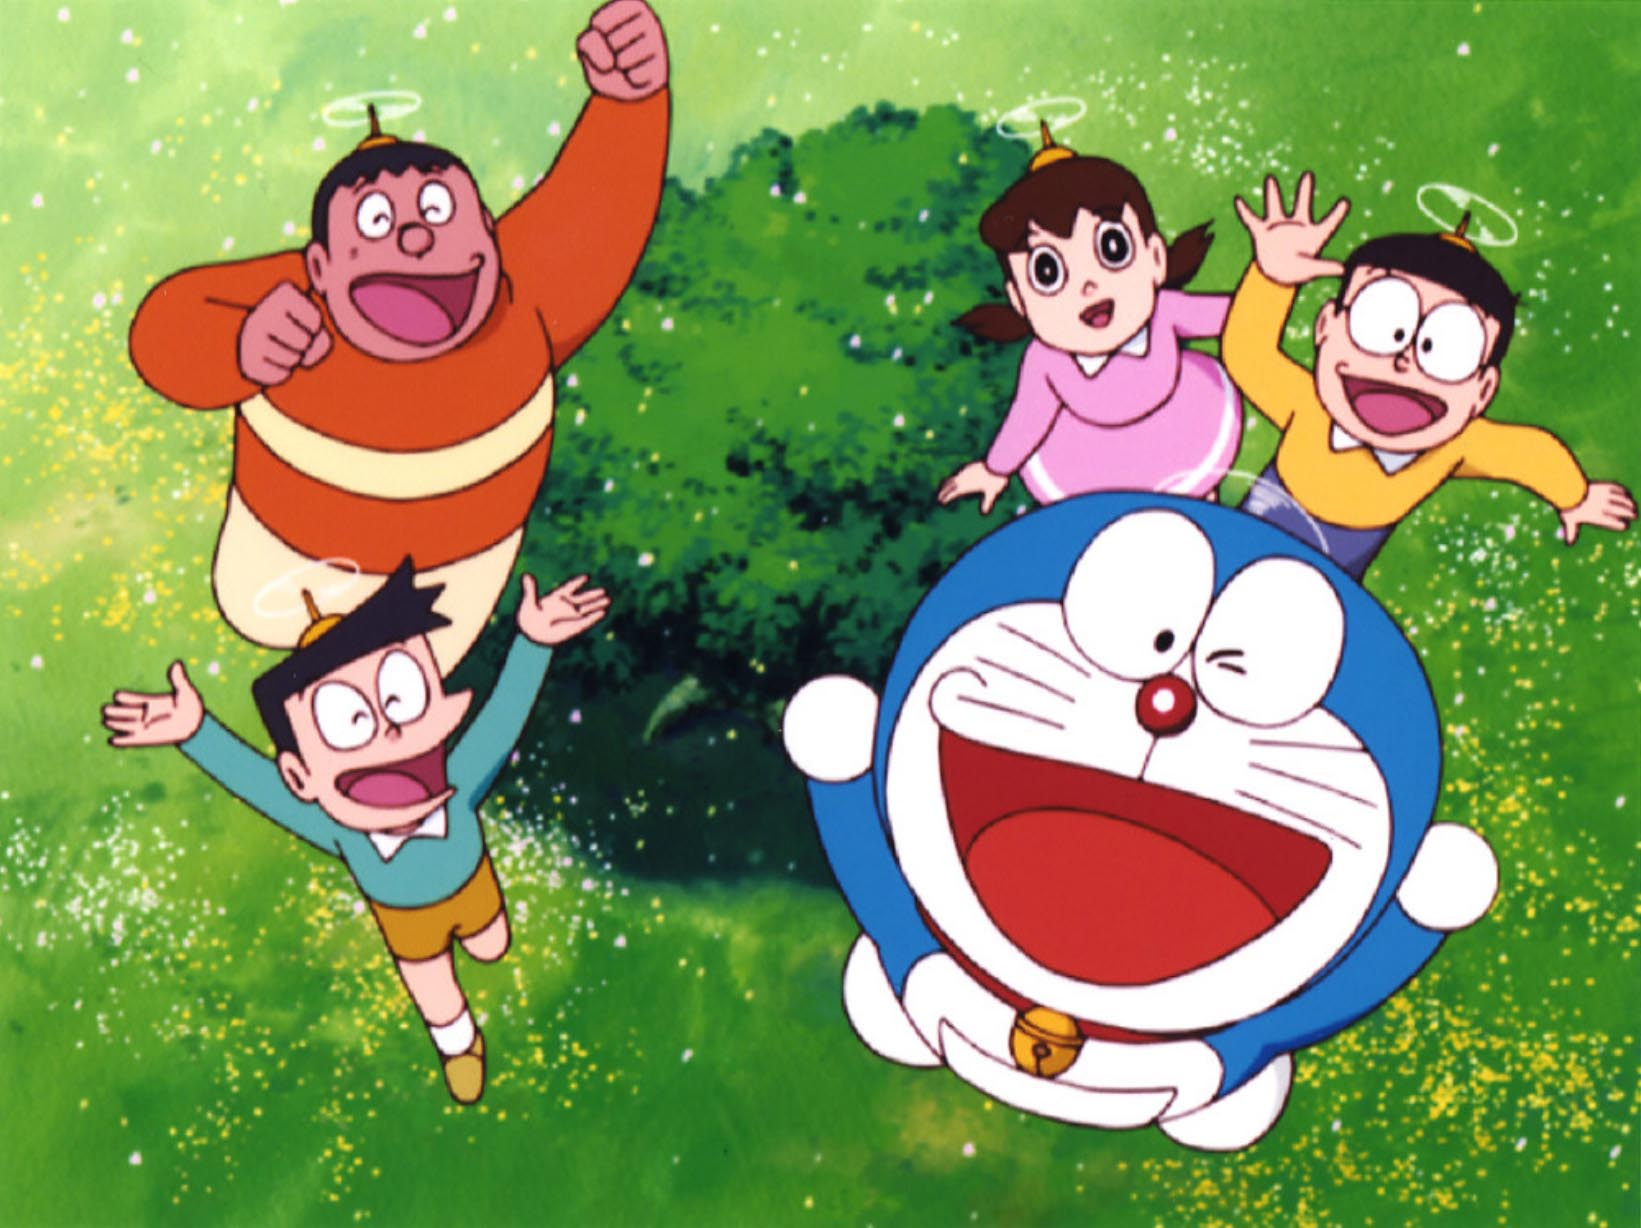 Most Funniest Doremon Episodes that will Definitely make you Laugh if you Love Doraemon